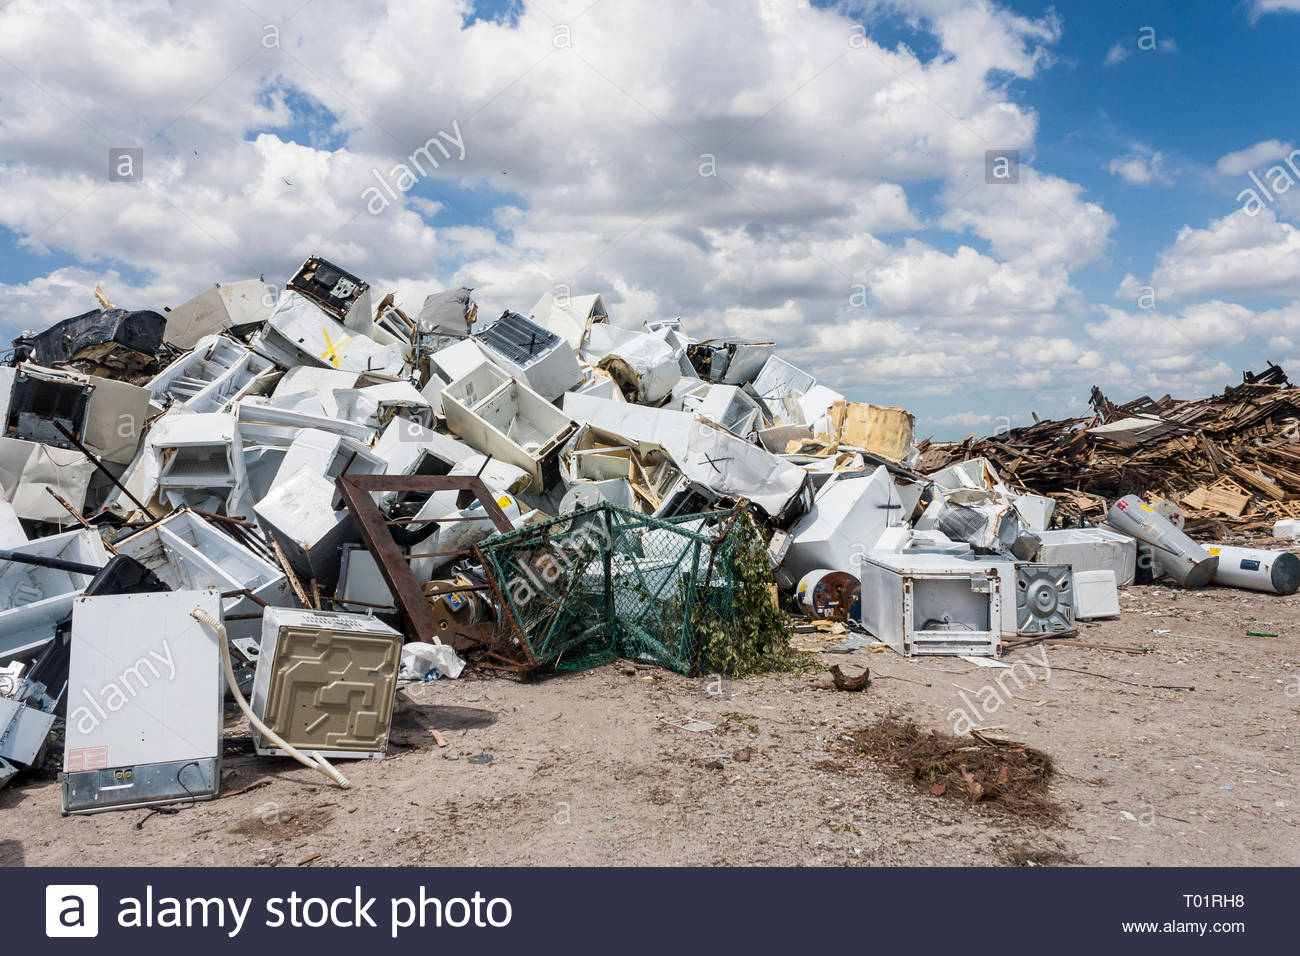 Aluminum and wood recycling area of landfill site - Stock Image